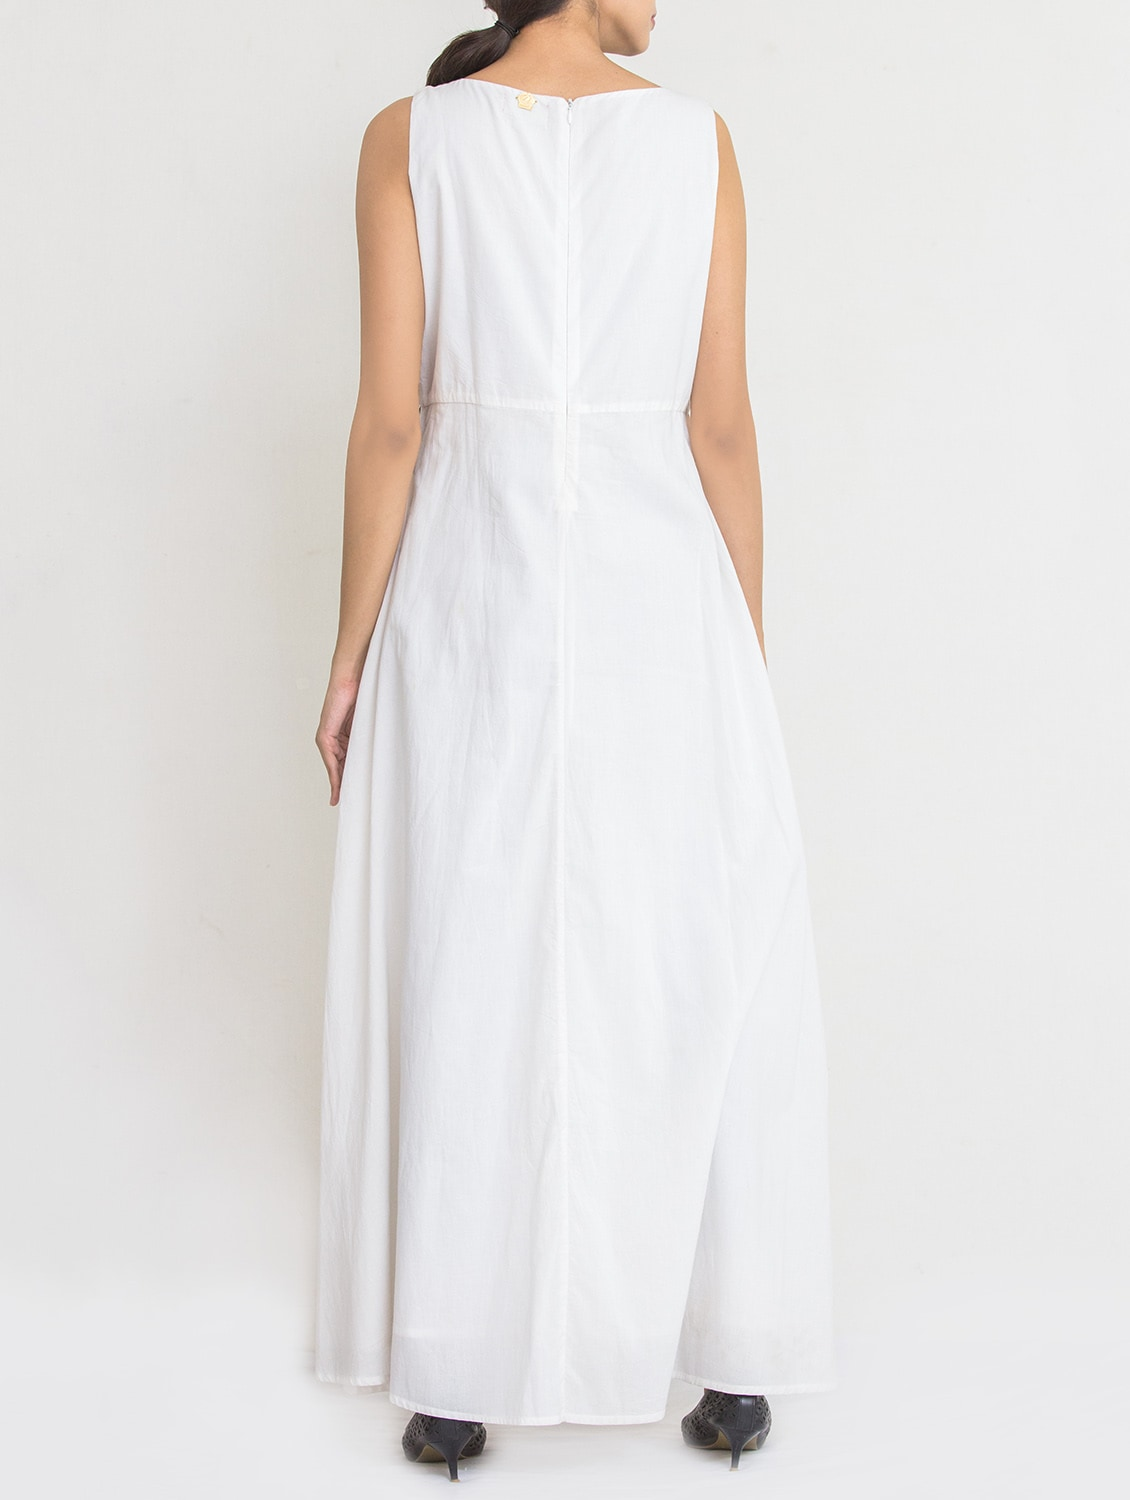 d999deb626cd Buy White Cotton Maxi Dress for Women from Reme for ₹1415 at 51% off